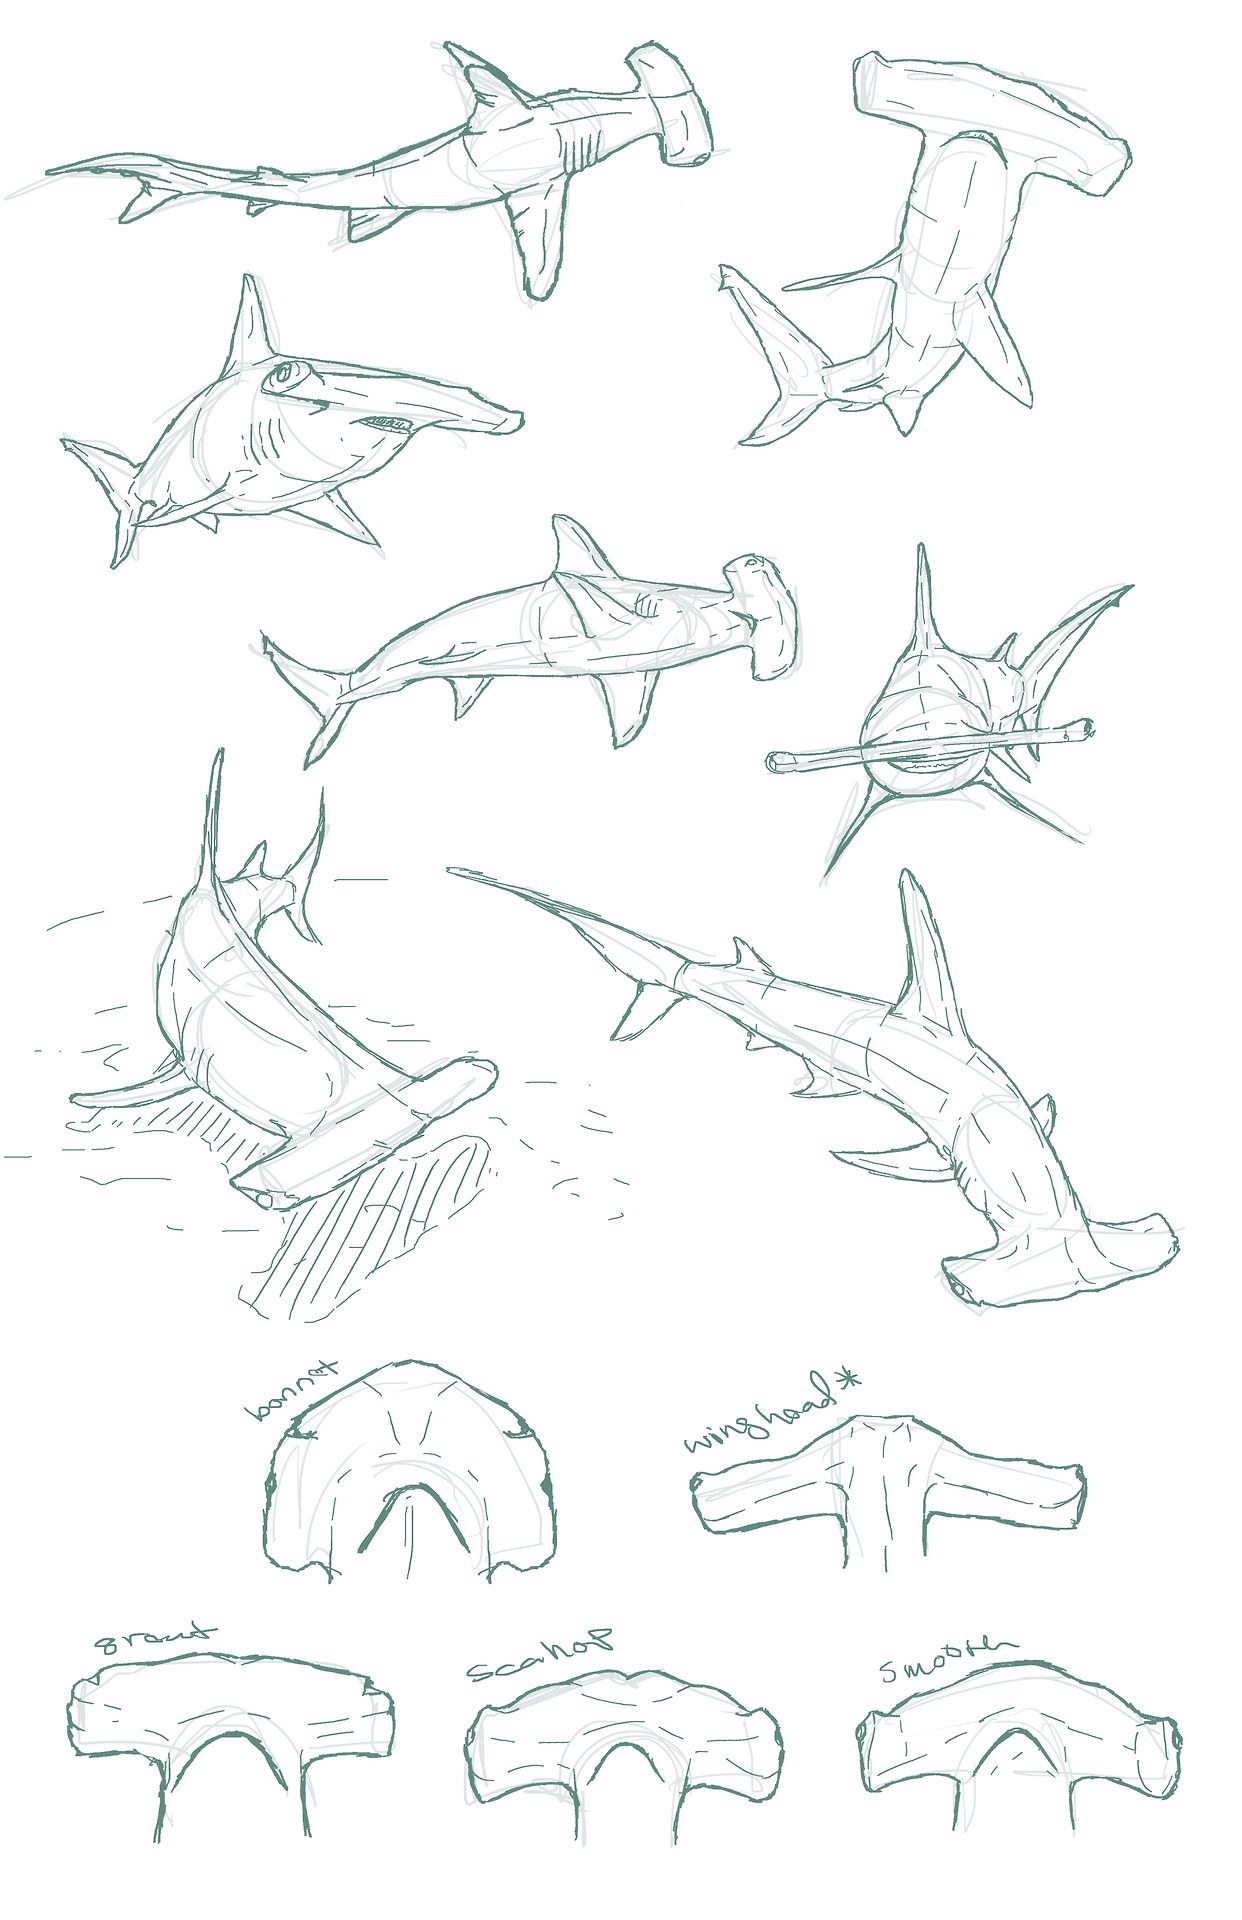 Edemoss Hammerhead Sketches I Did For A Piece